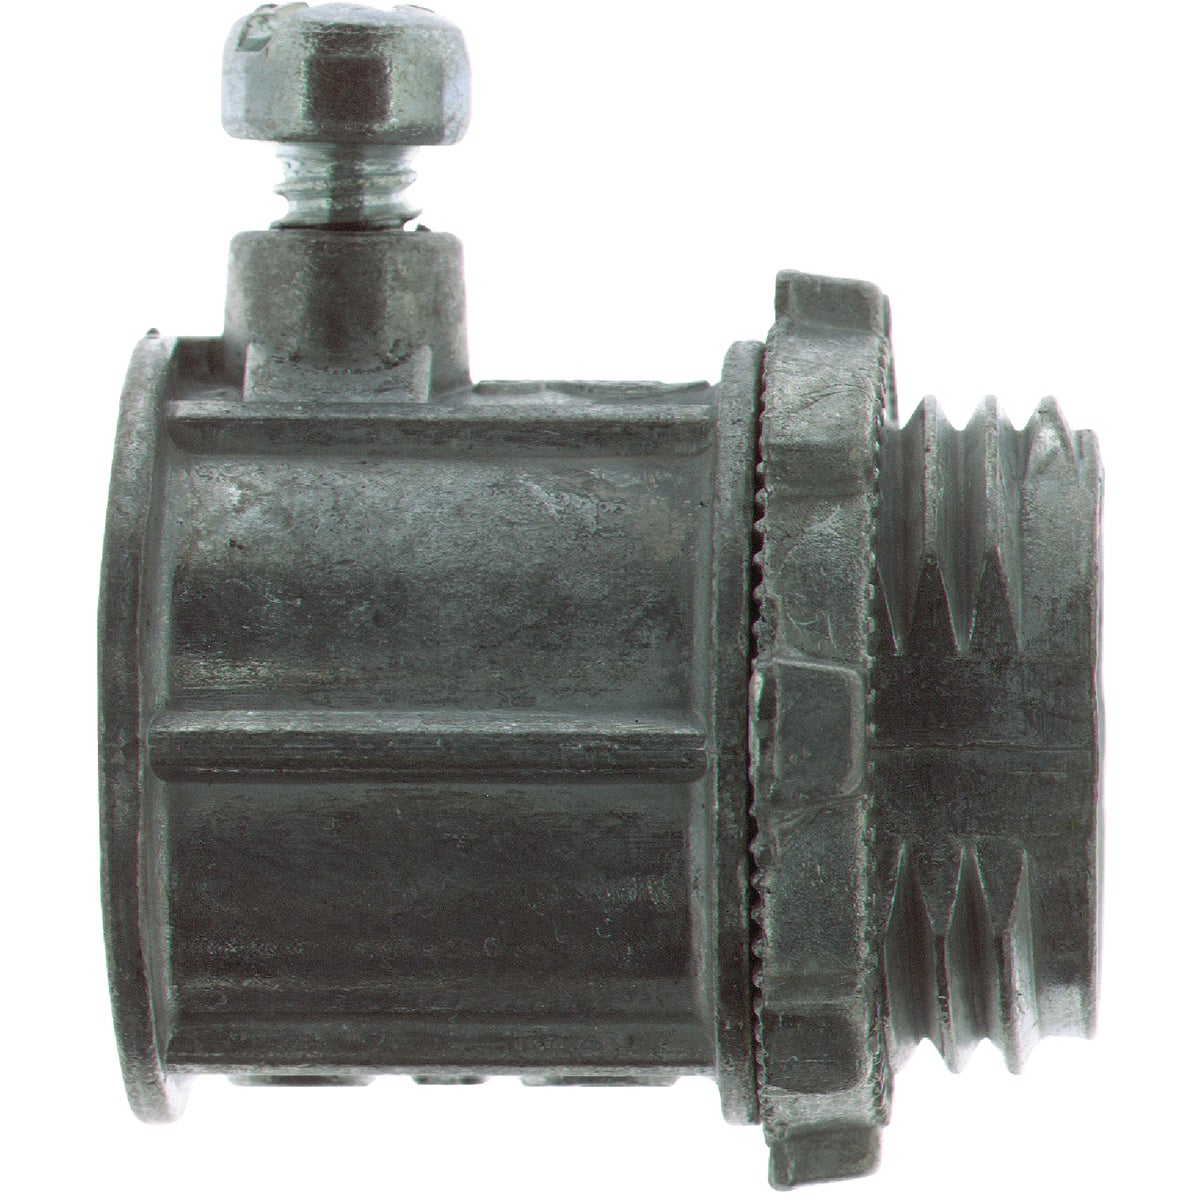 """5PC 3/4"""" EMT CONNECTOR - TC222SC5 by Thomas & Betts"""